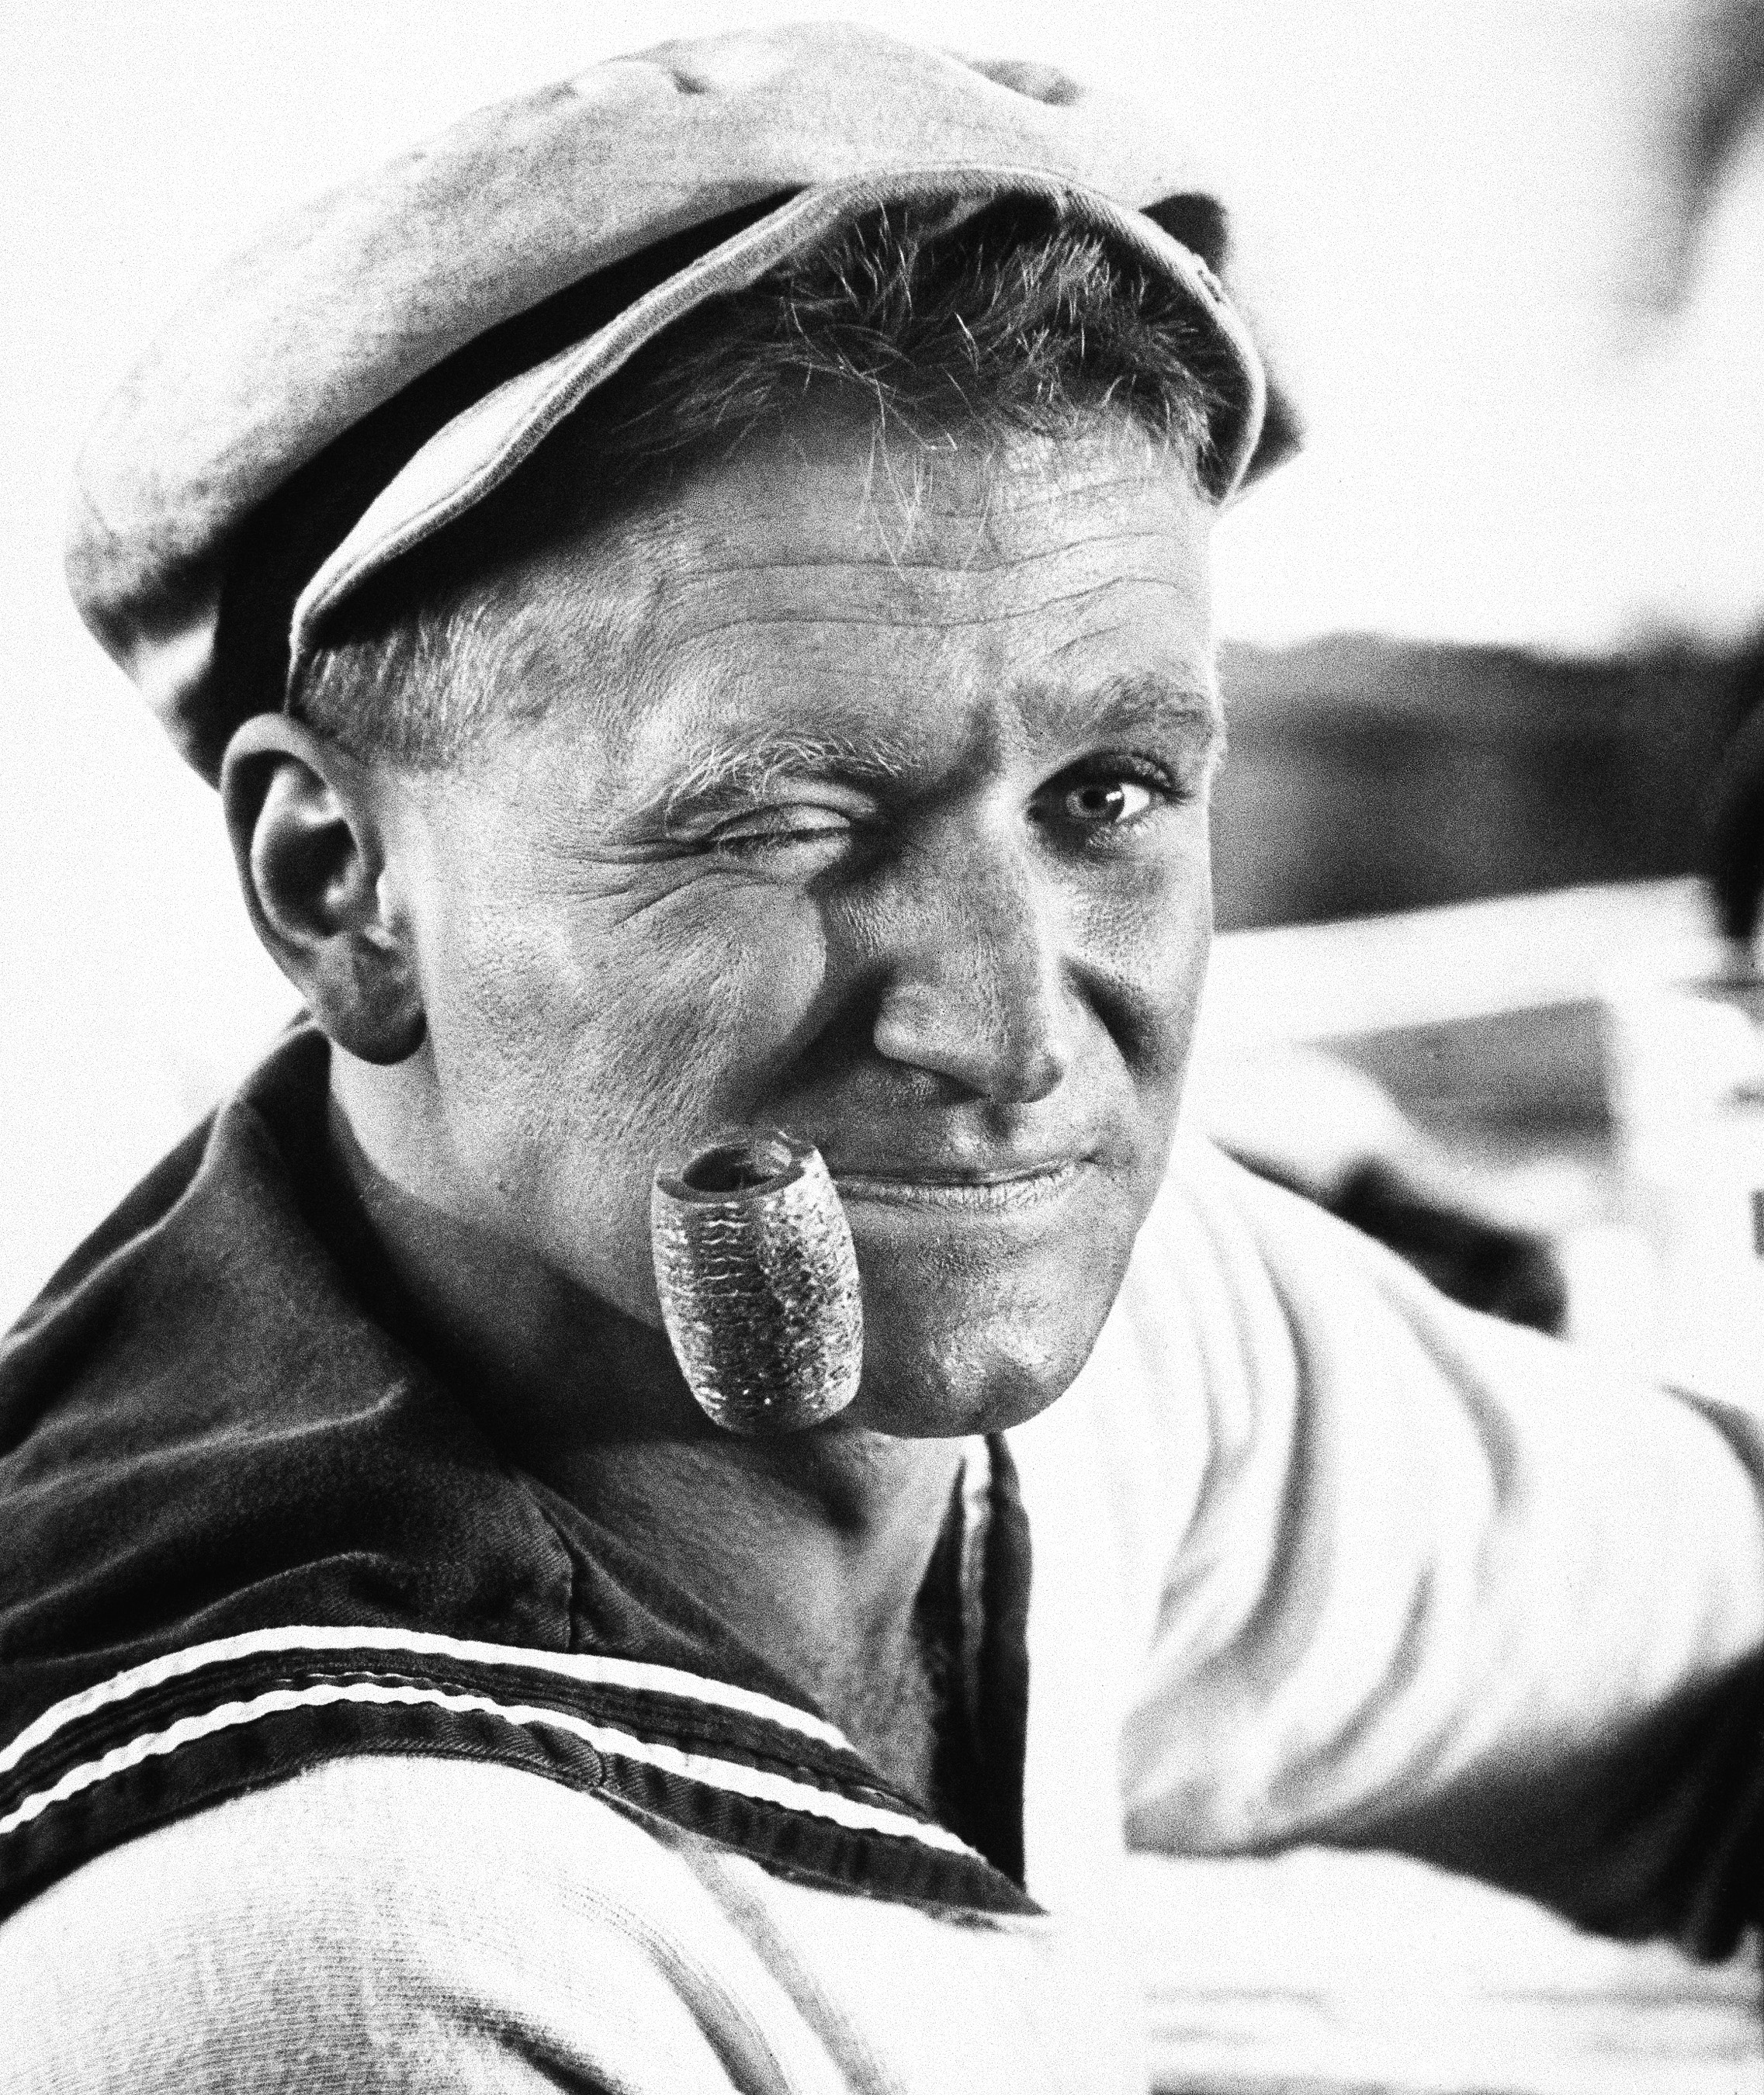 Williams' played the spinach-loving sailor Popeye in its eponymous 1980 film.